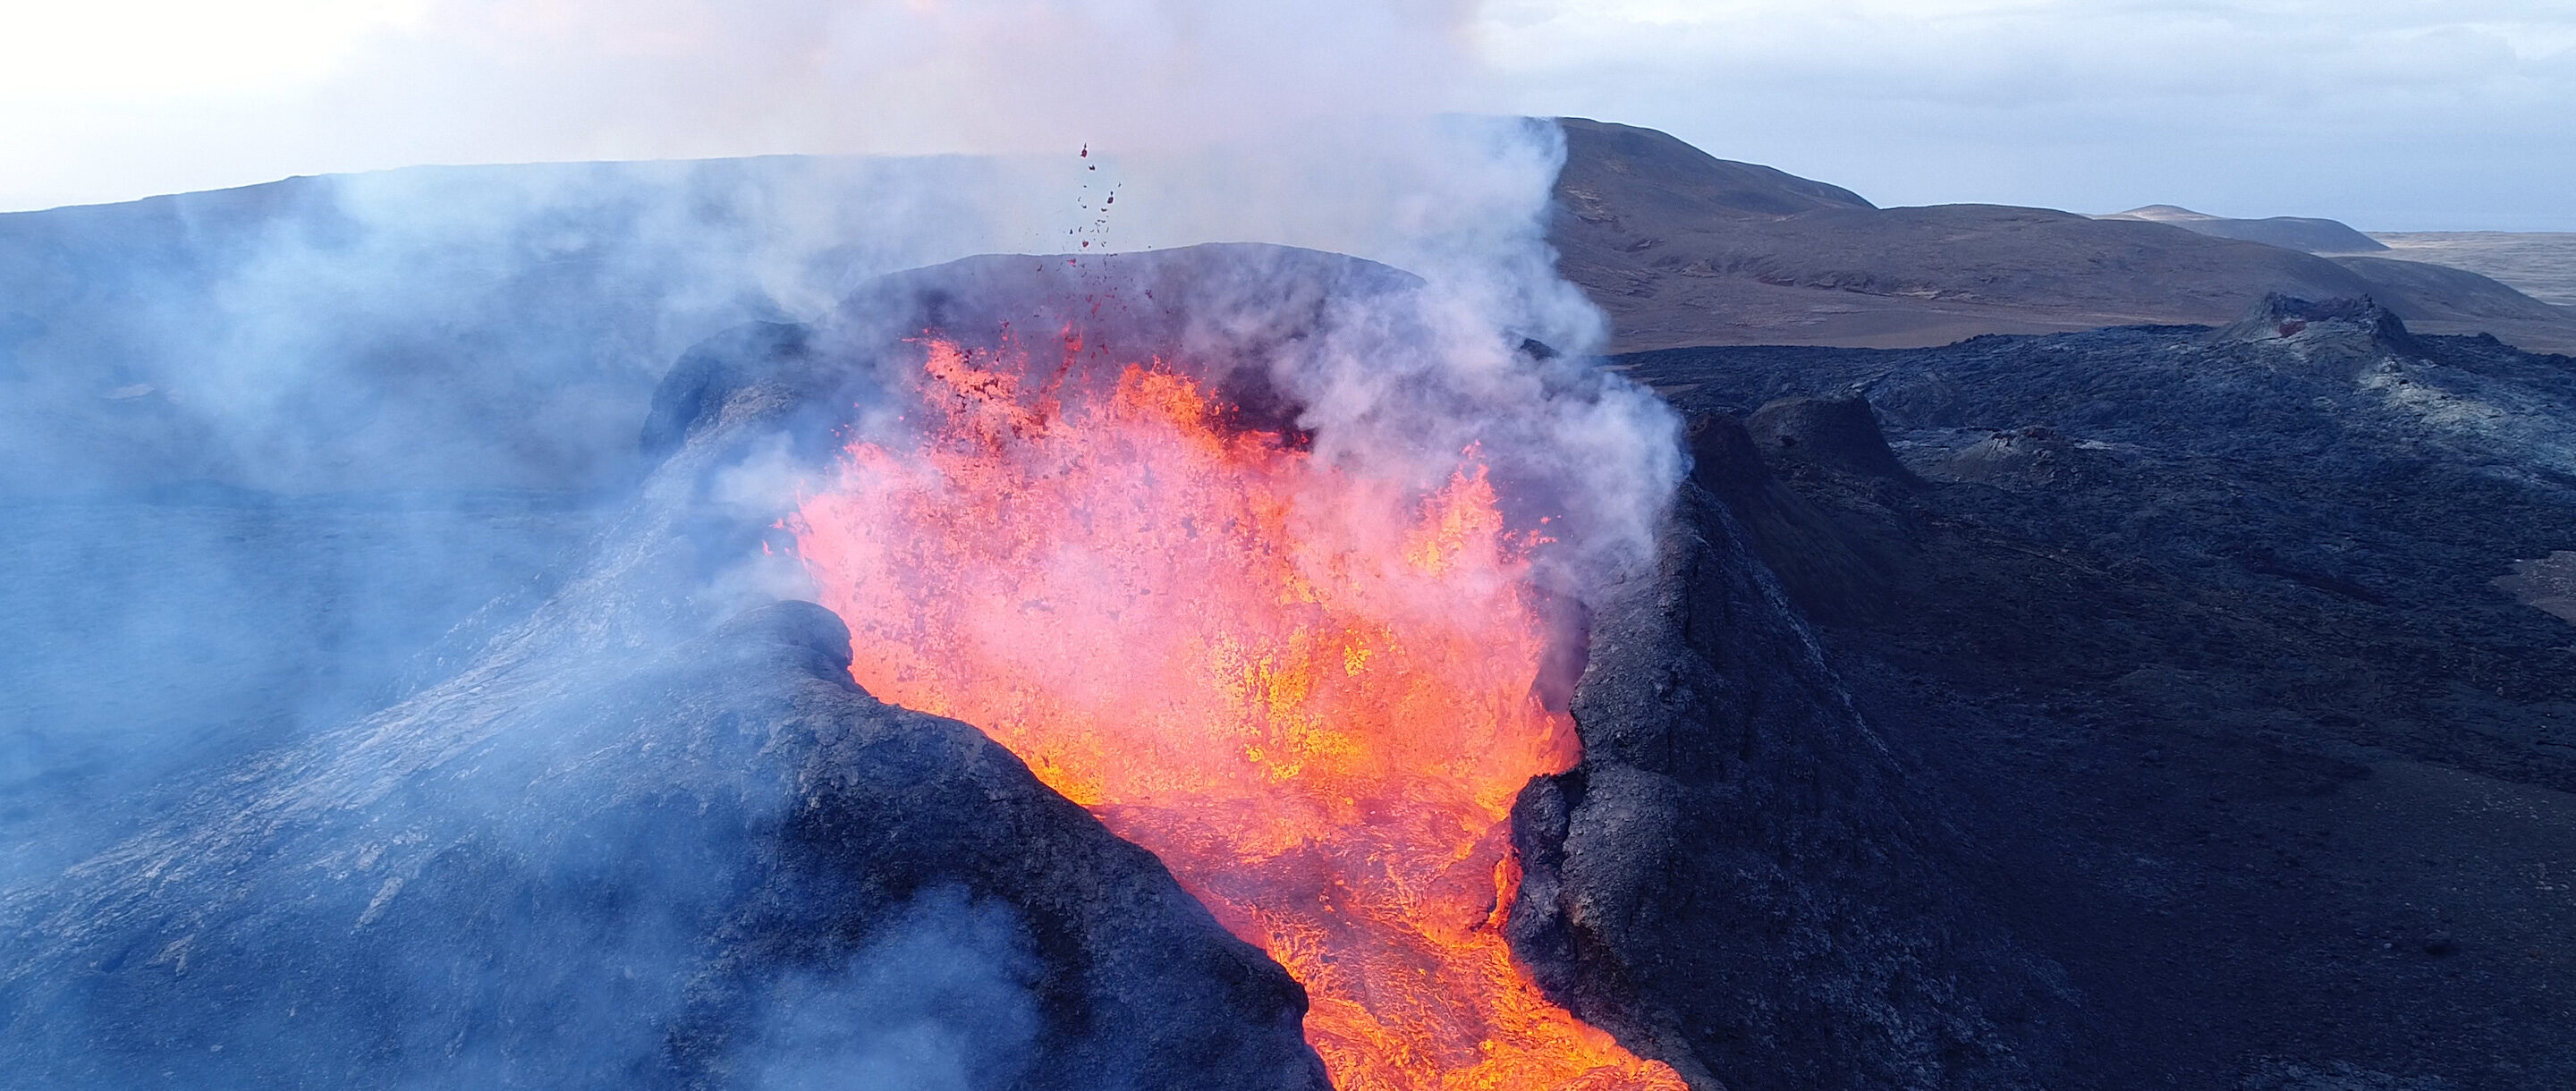 Lava bubbling out of the top of a volcano.